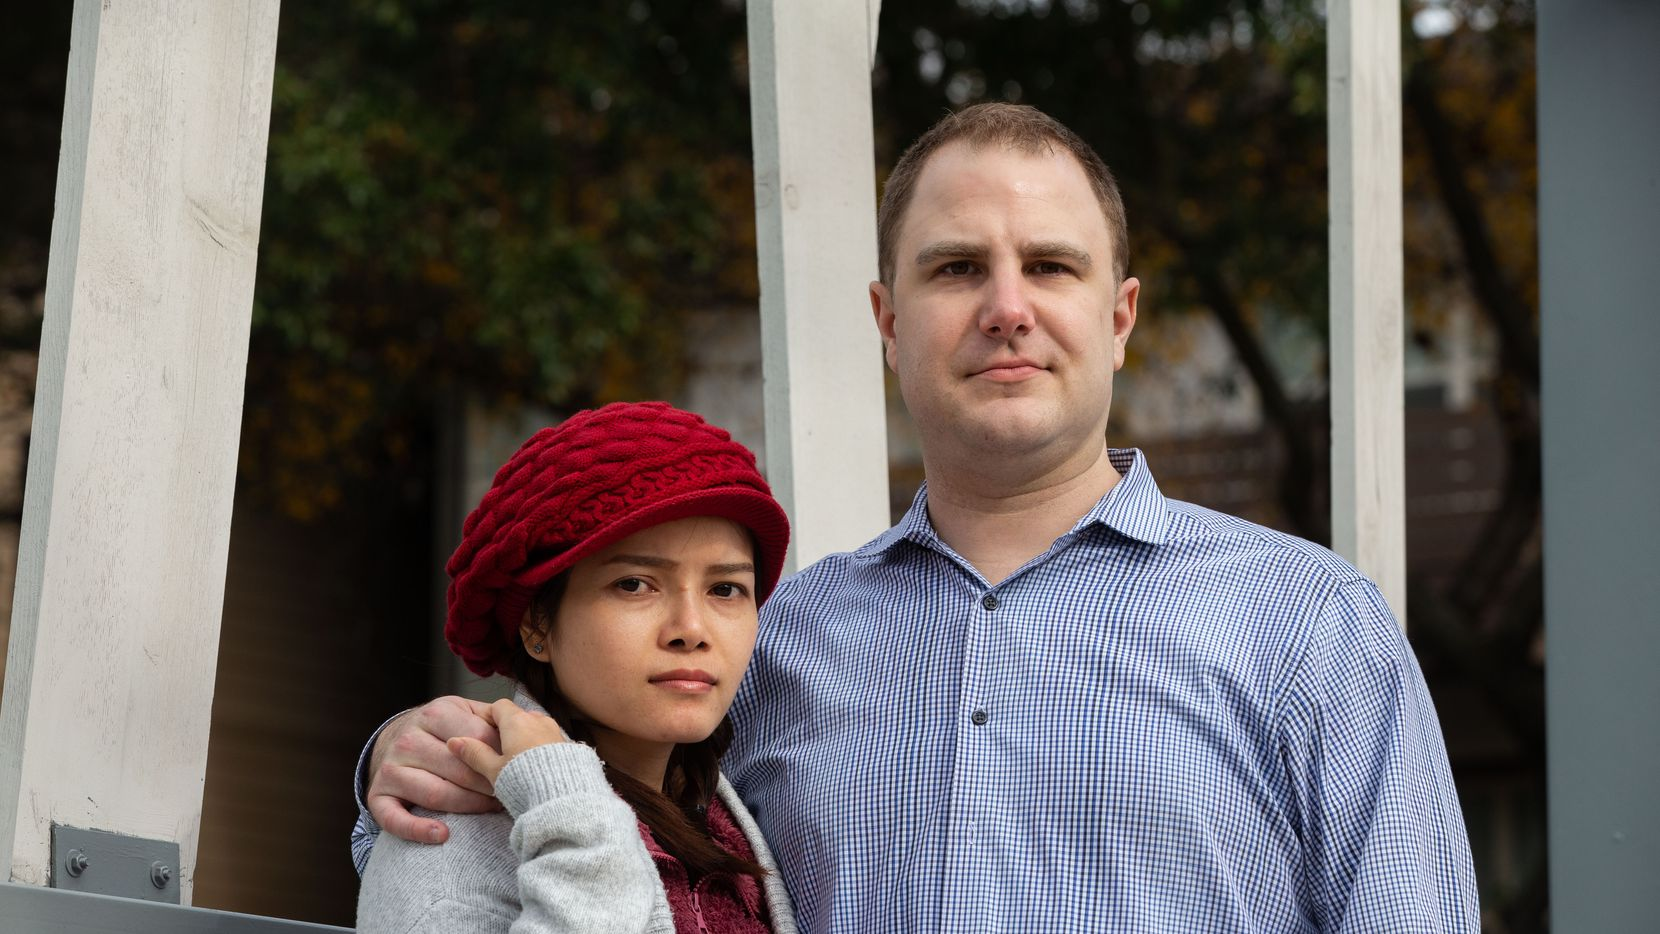 Spouses Aaron Jones (right) and Trinh Nguyen pose for a portrait at their apartment complex in Dallas on Friday, Dec. 18, 2020. Jones, a U.S. citizen, and Nguyen, a Vietnamese-born legal resident, filed their joint federal income taxes this year with Jones's Social Security Number and Nguyen's ITIN, a tax identification number used by both legal immigrants and unauthorized immigrants — a move that earlier this year knocked them both out of receiving about $2400 in federal stimulus check money offered this year due to the pandemic.